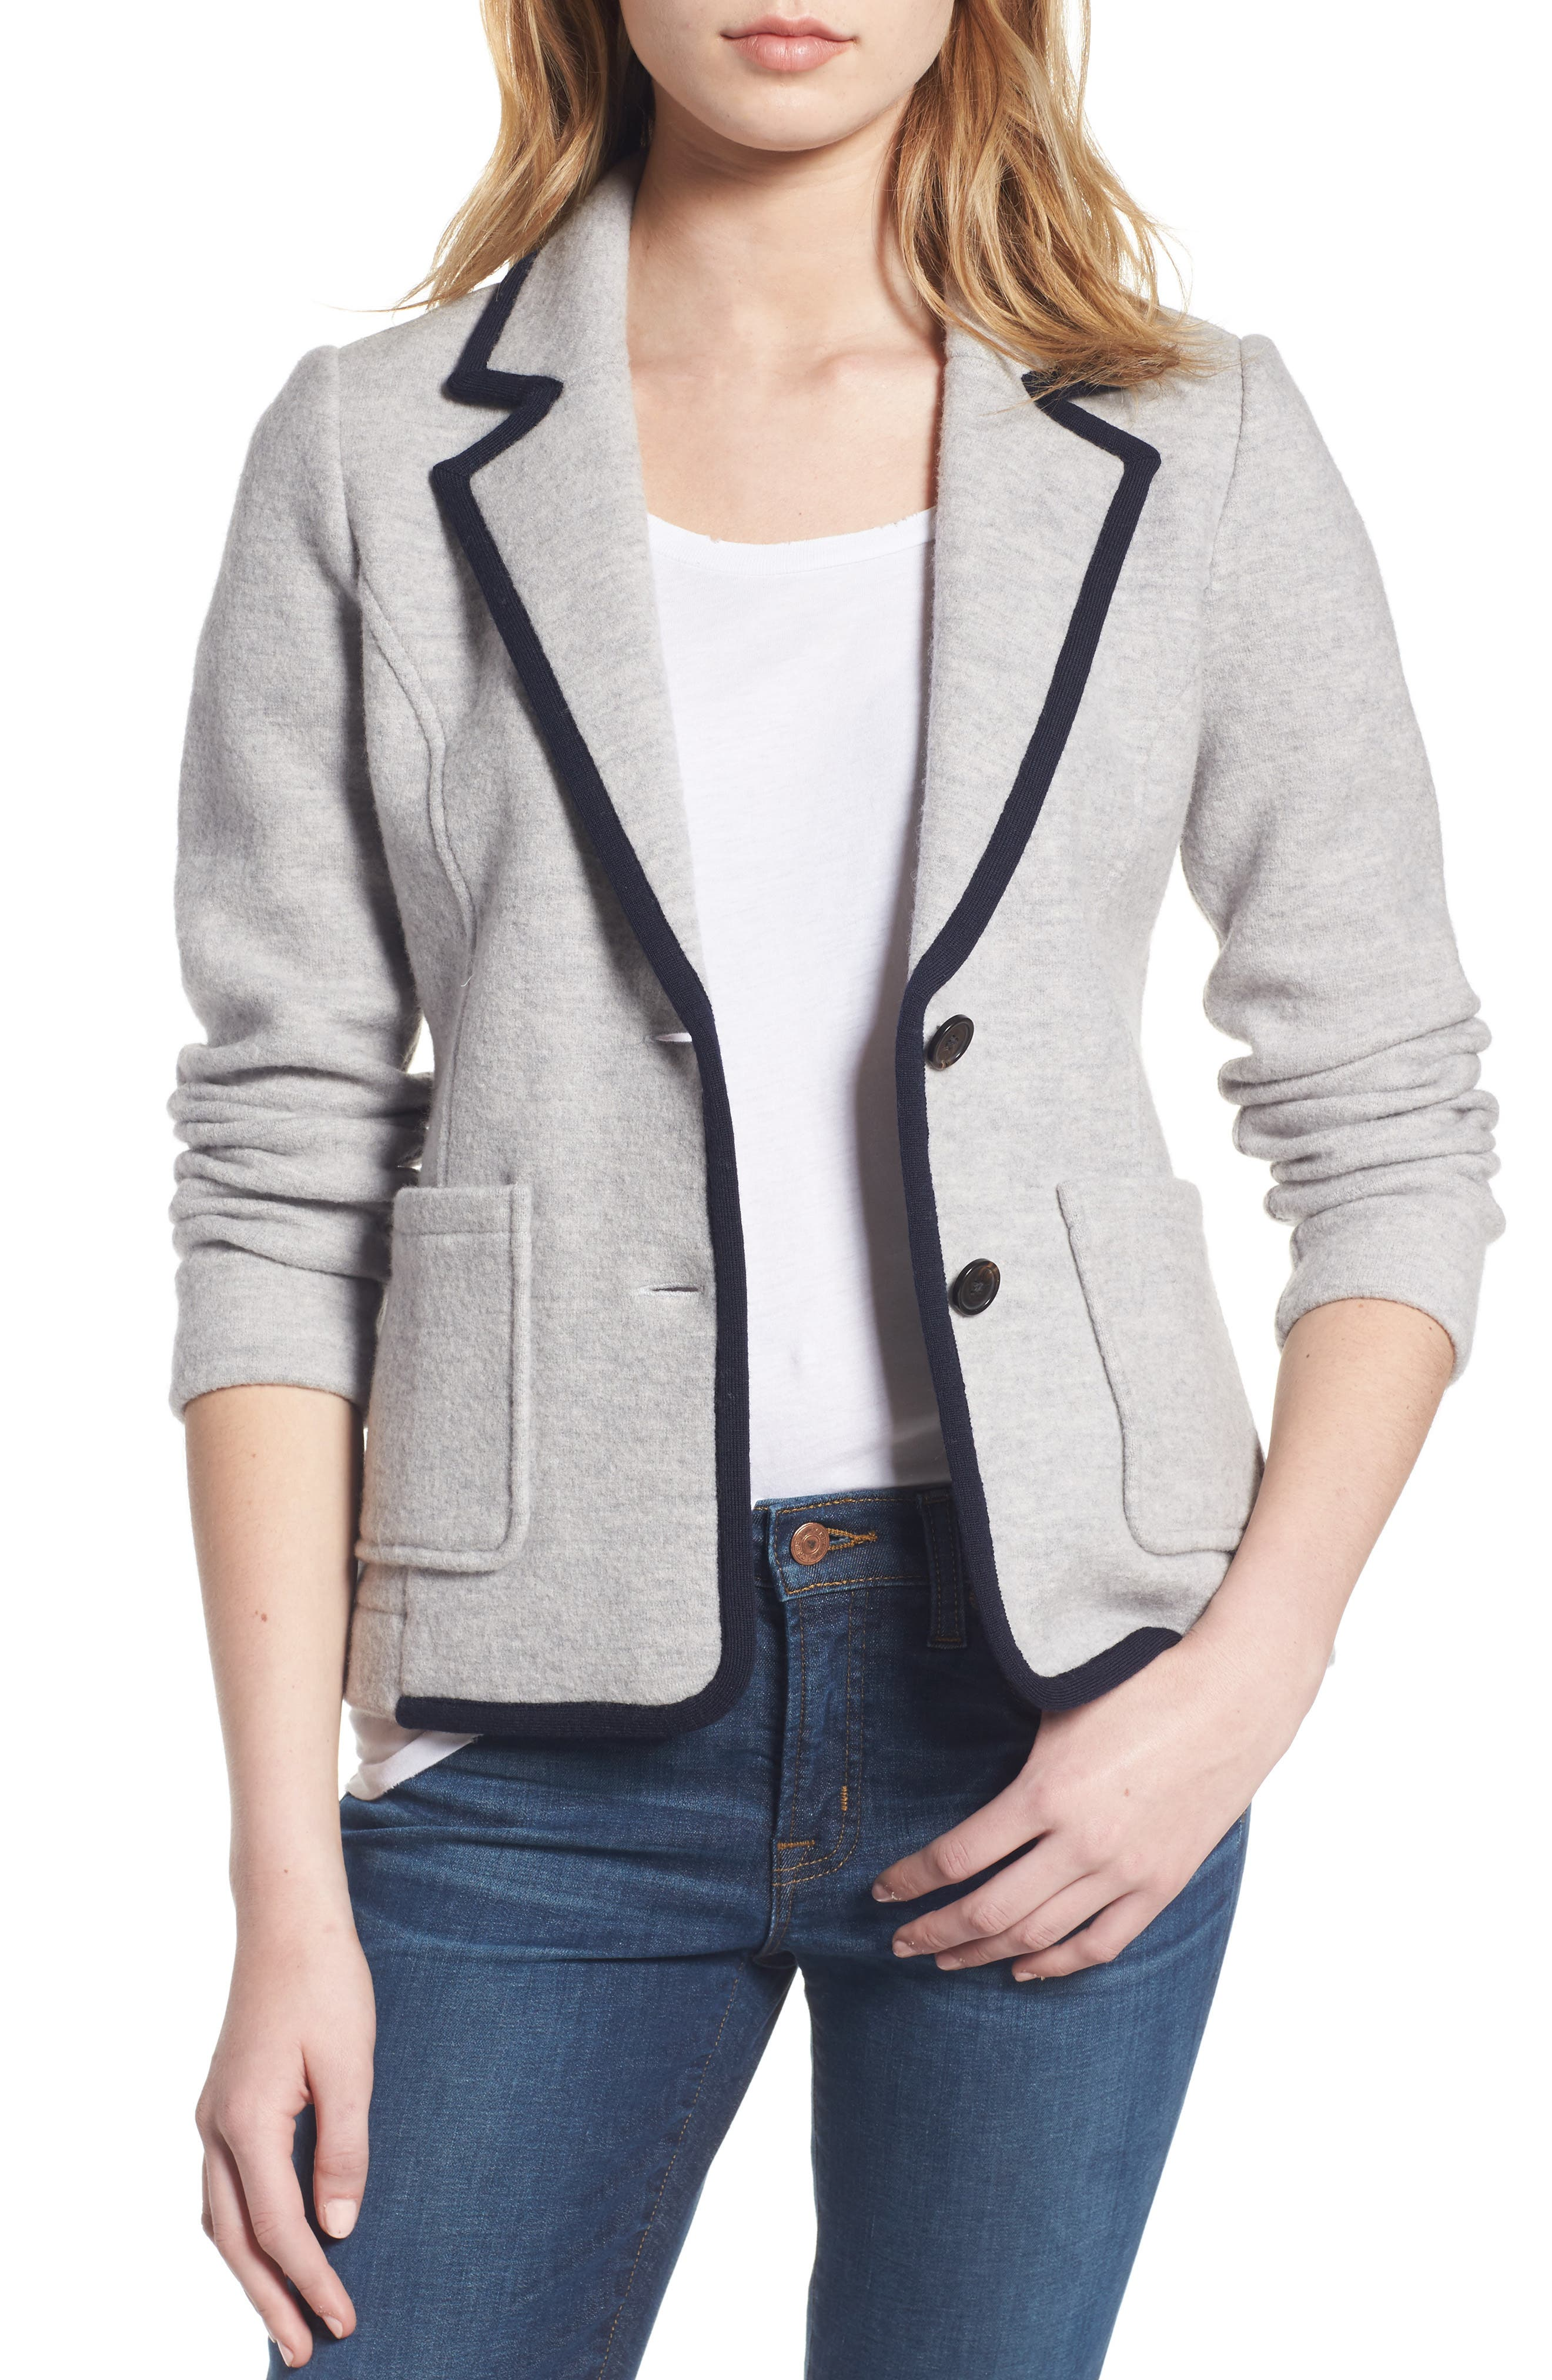 J.Crew Tipped Merino Wool Sweater Blazer